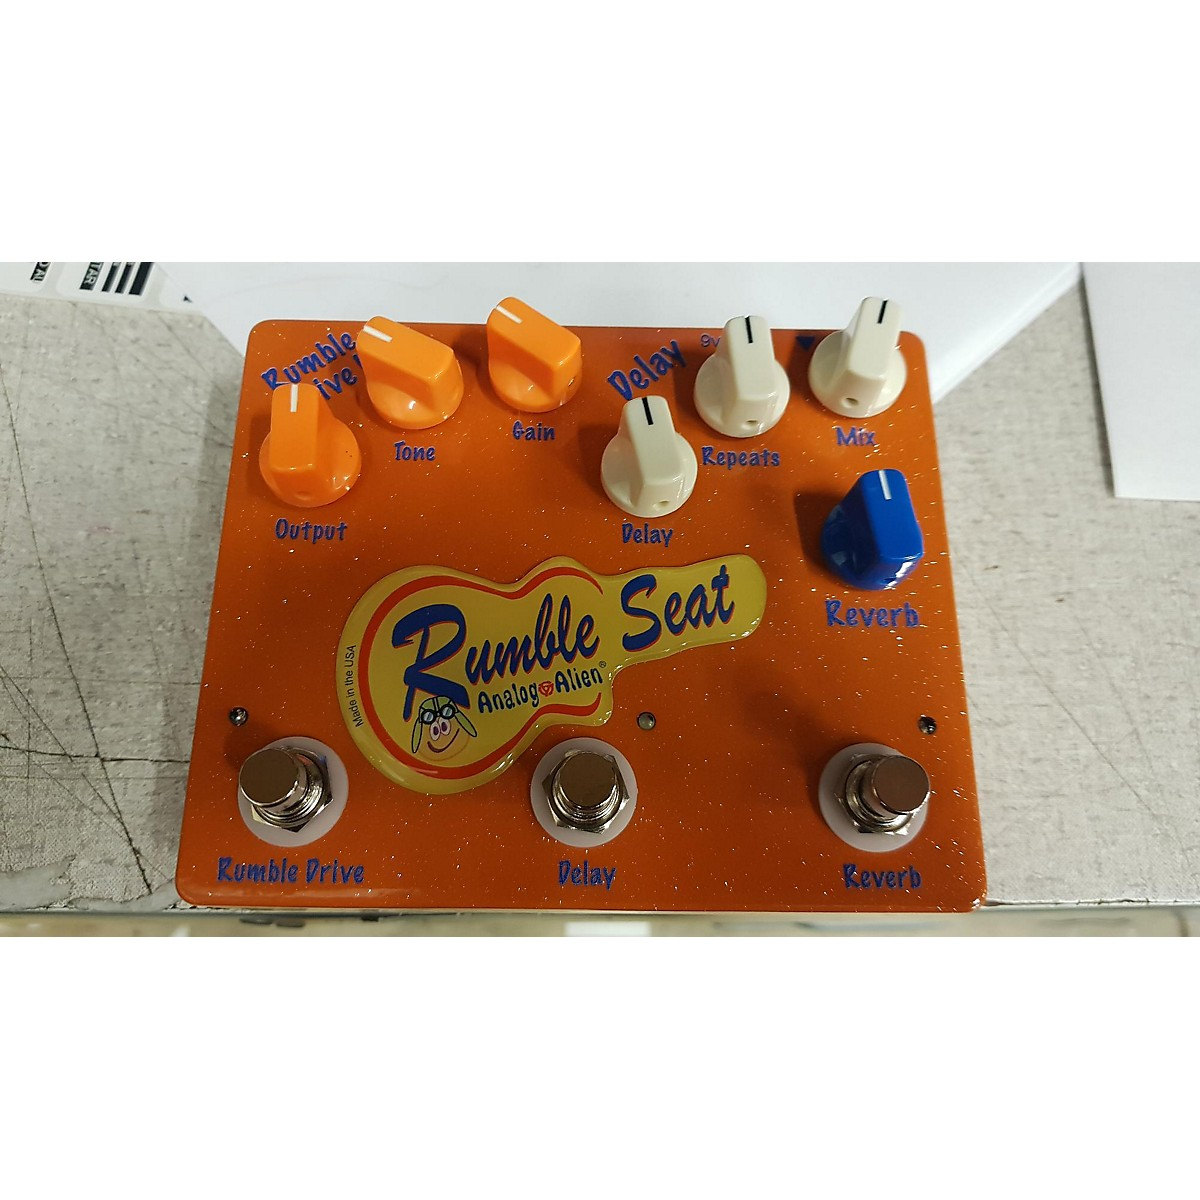 In Store Used Used Analogue Alien Rumble Seat Effect Processor